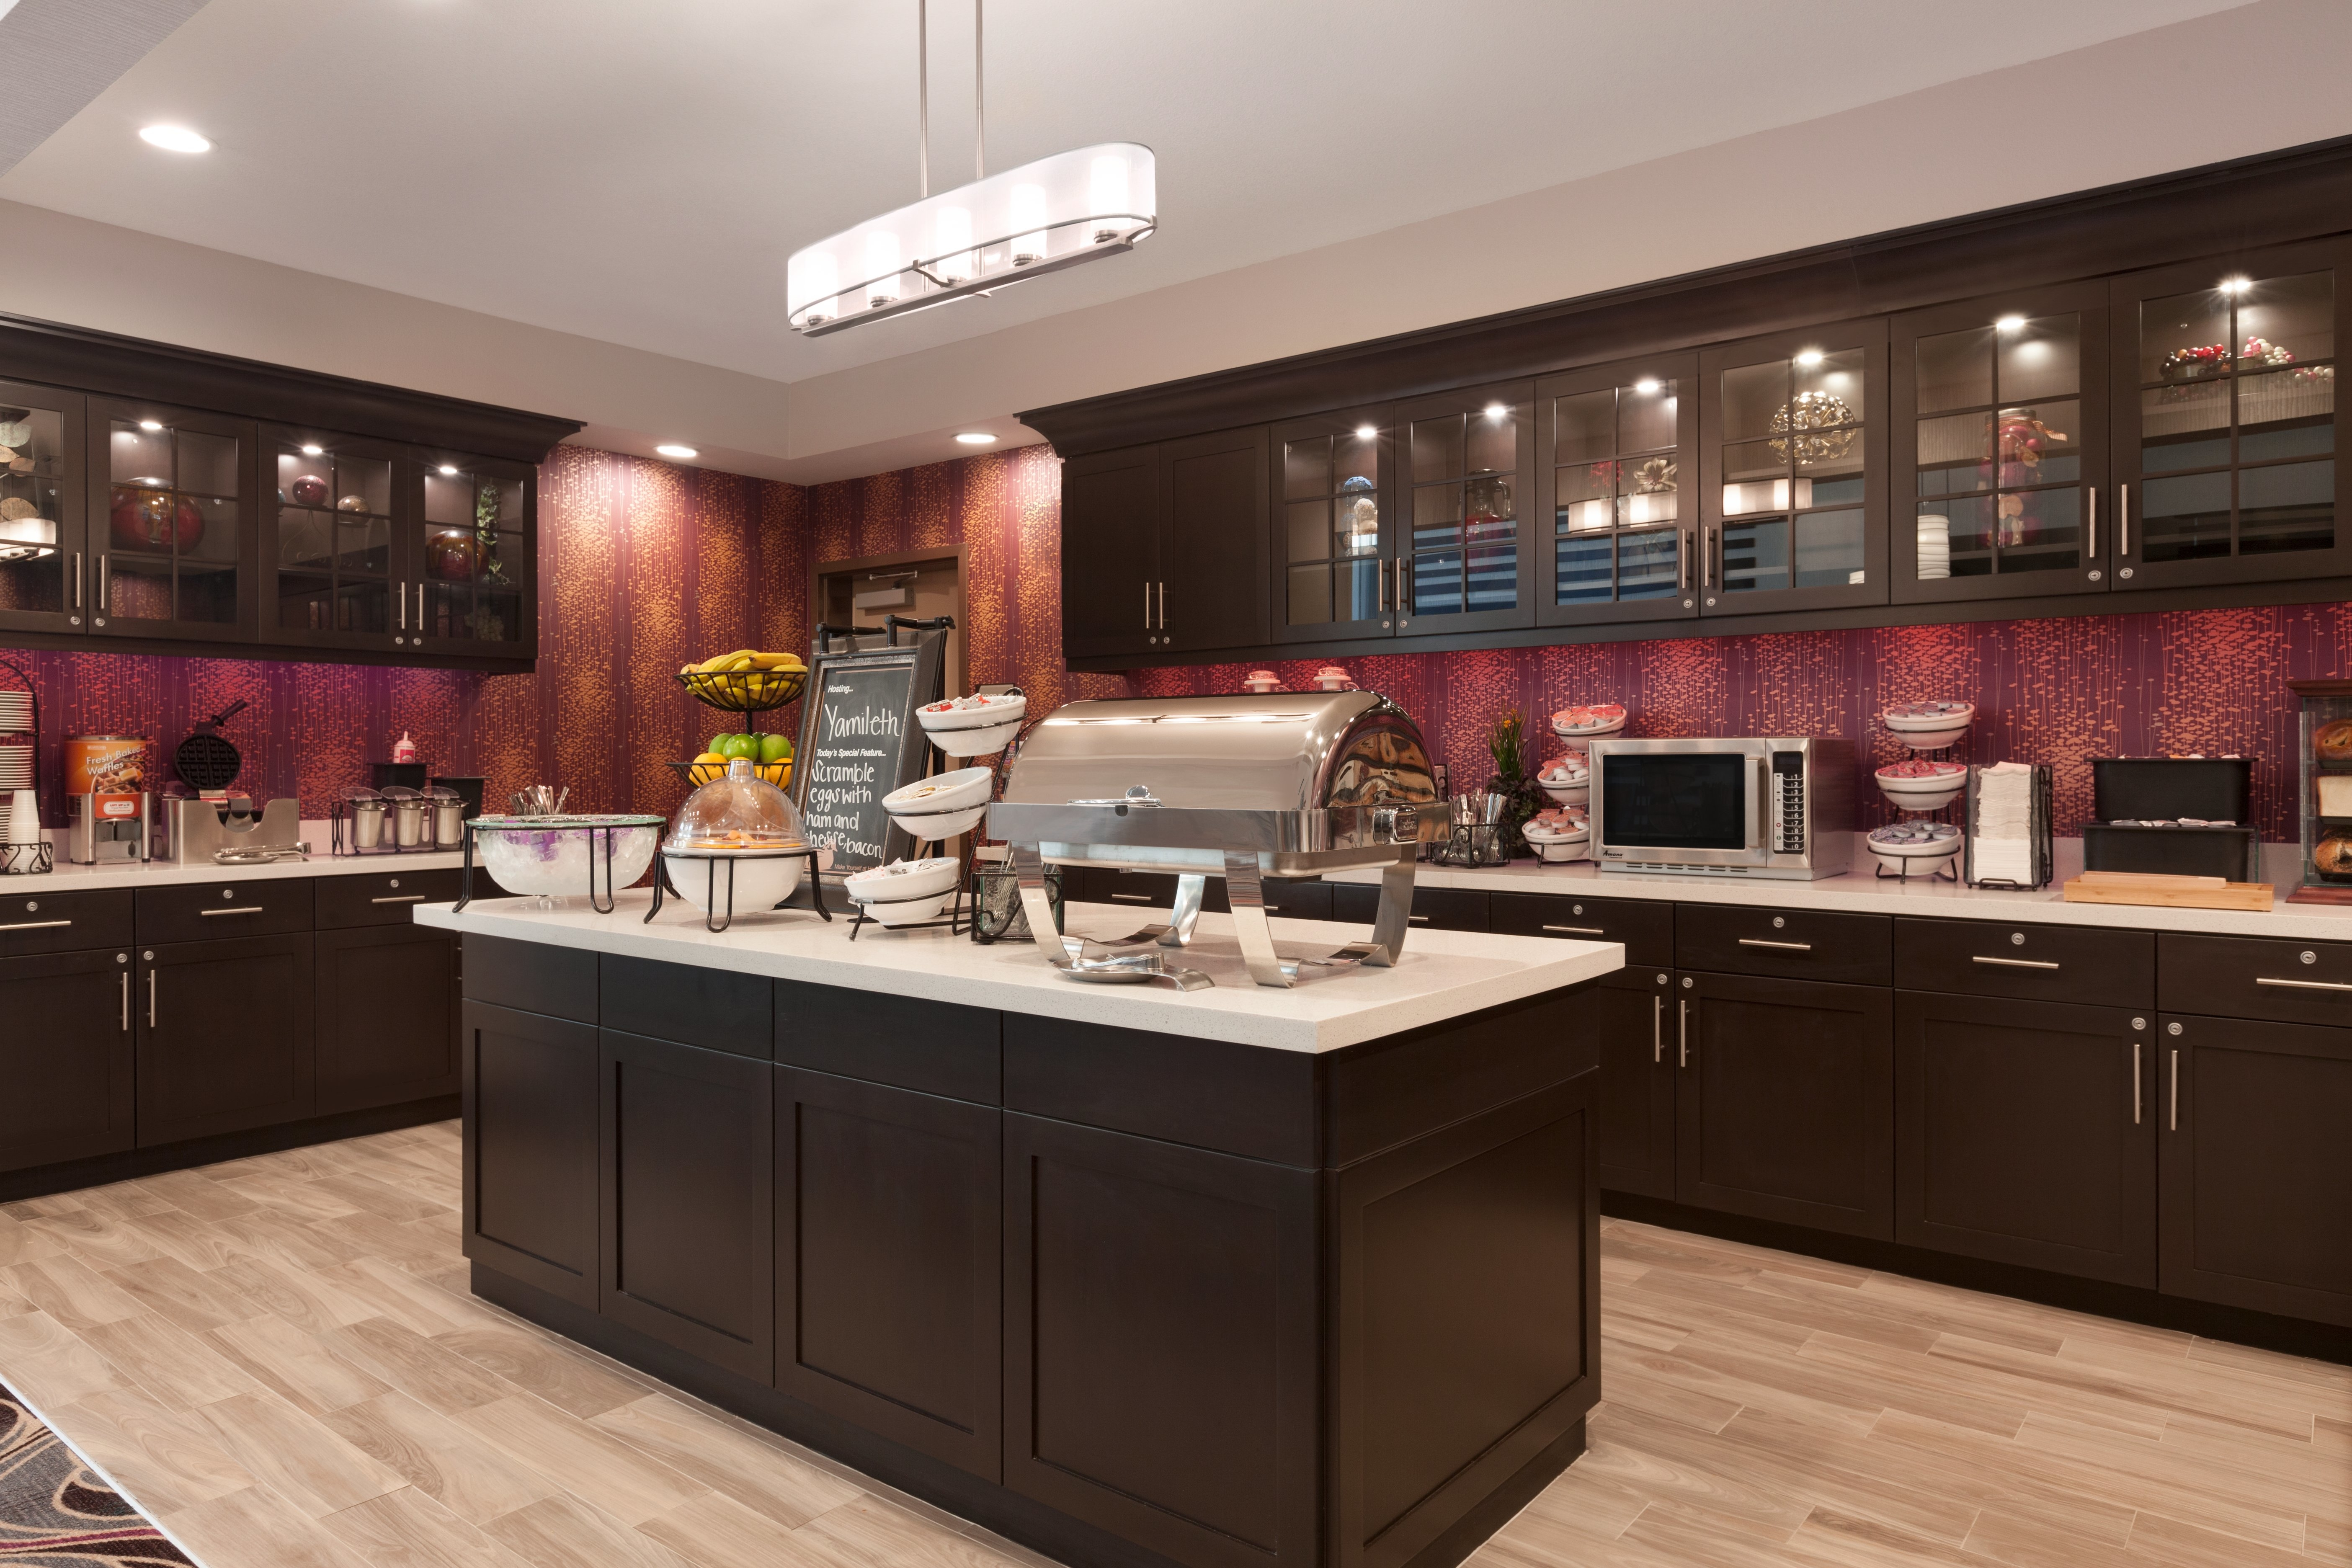 Homewood Suites by Hilton North Houston/Spring image 16